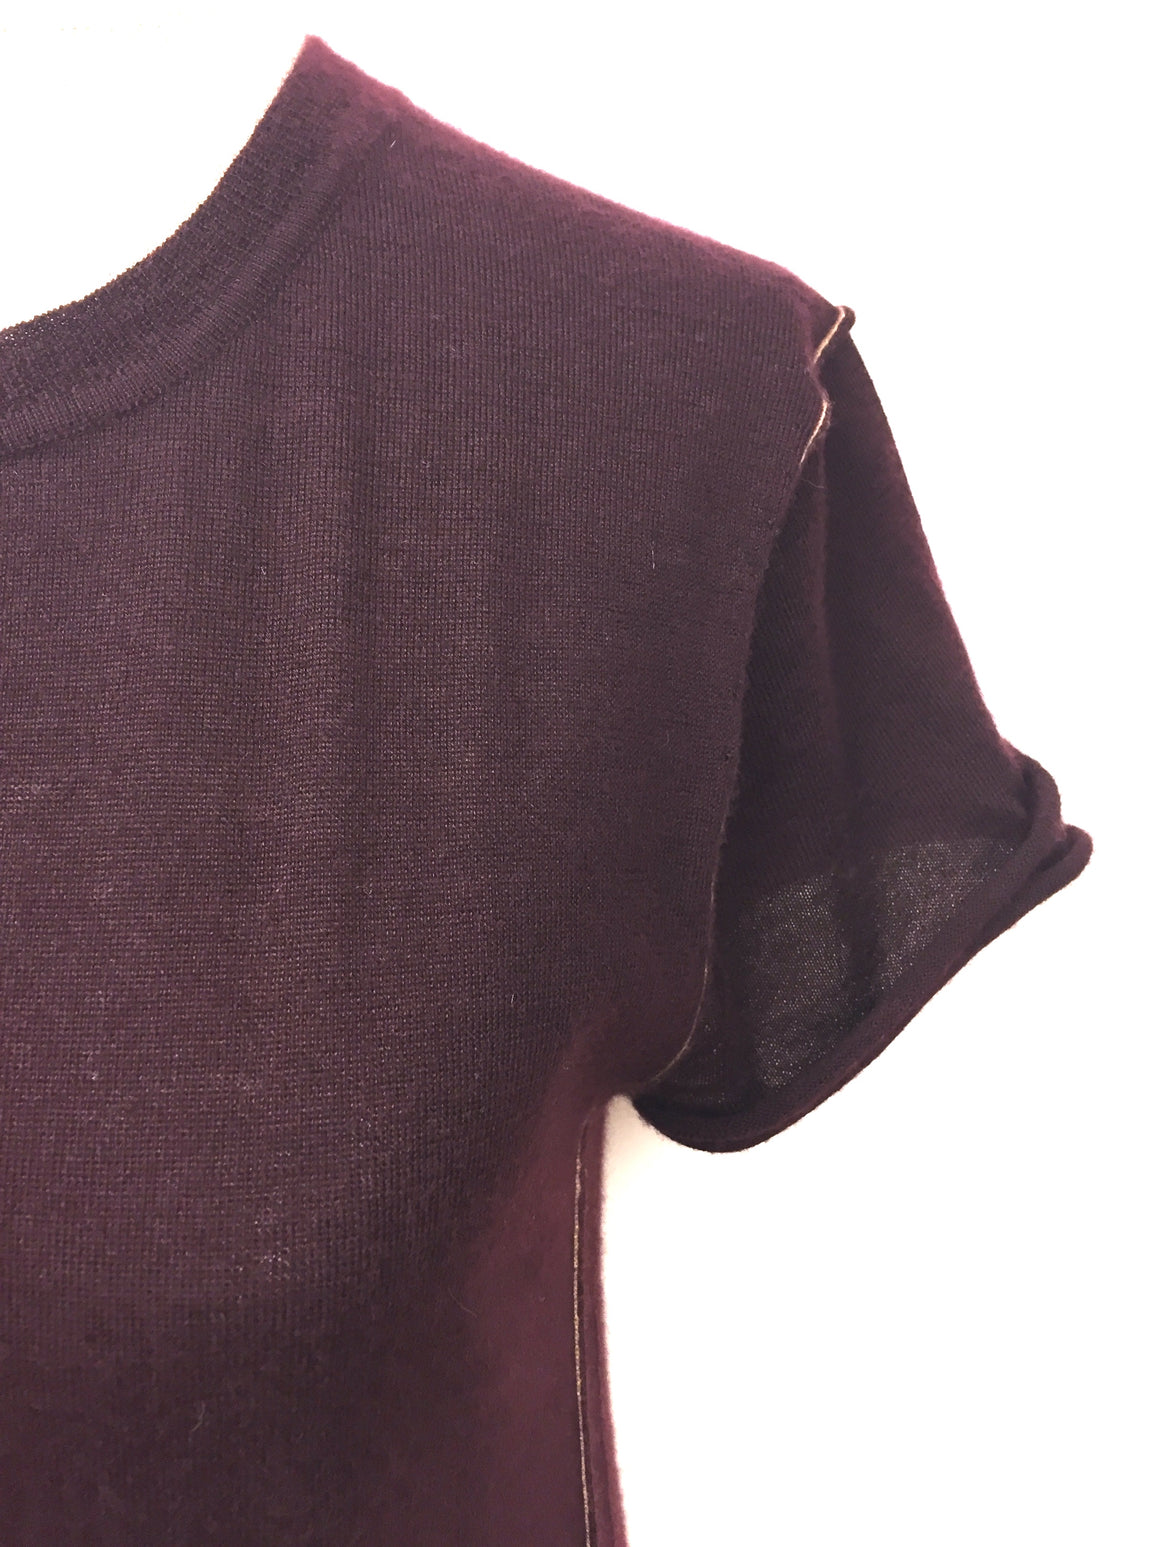 PAYCHI GUH  Burgundy Cashmere Beige Seam Trim Short-Sleeve Crewneck Sweater Top Size: Small